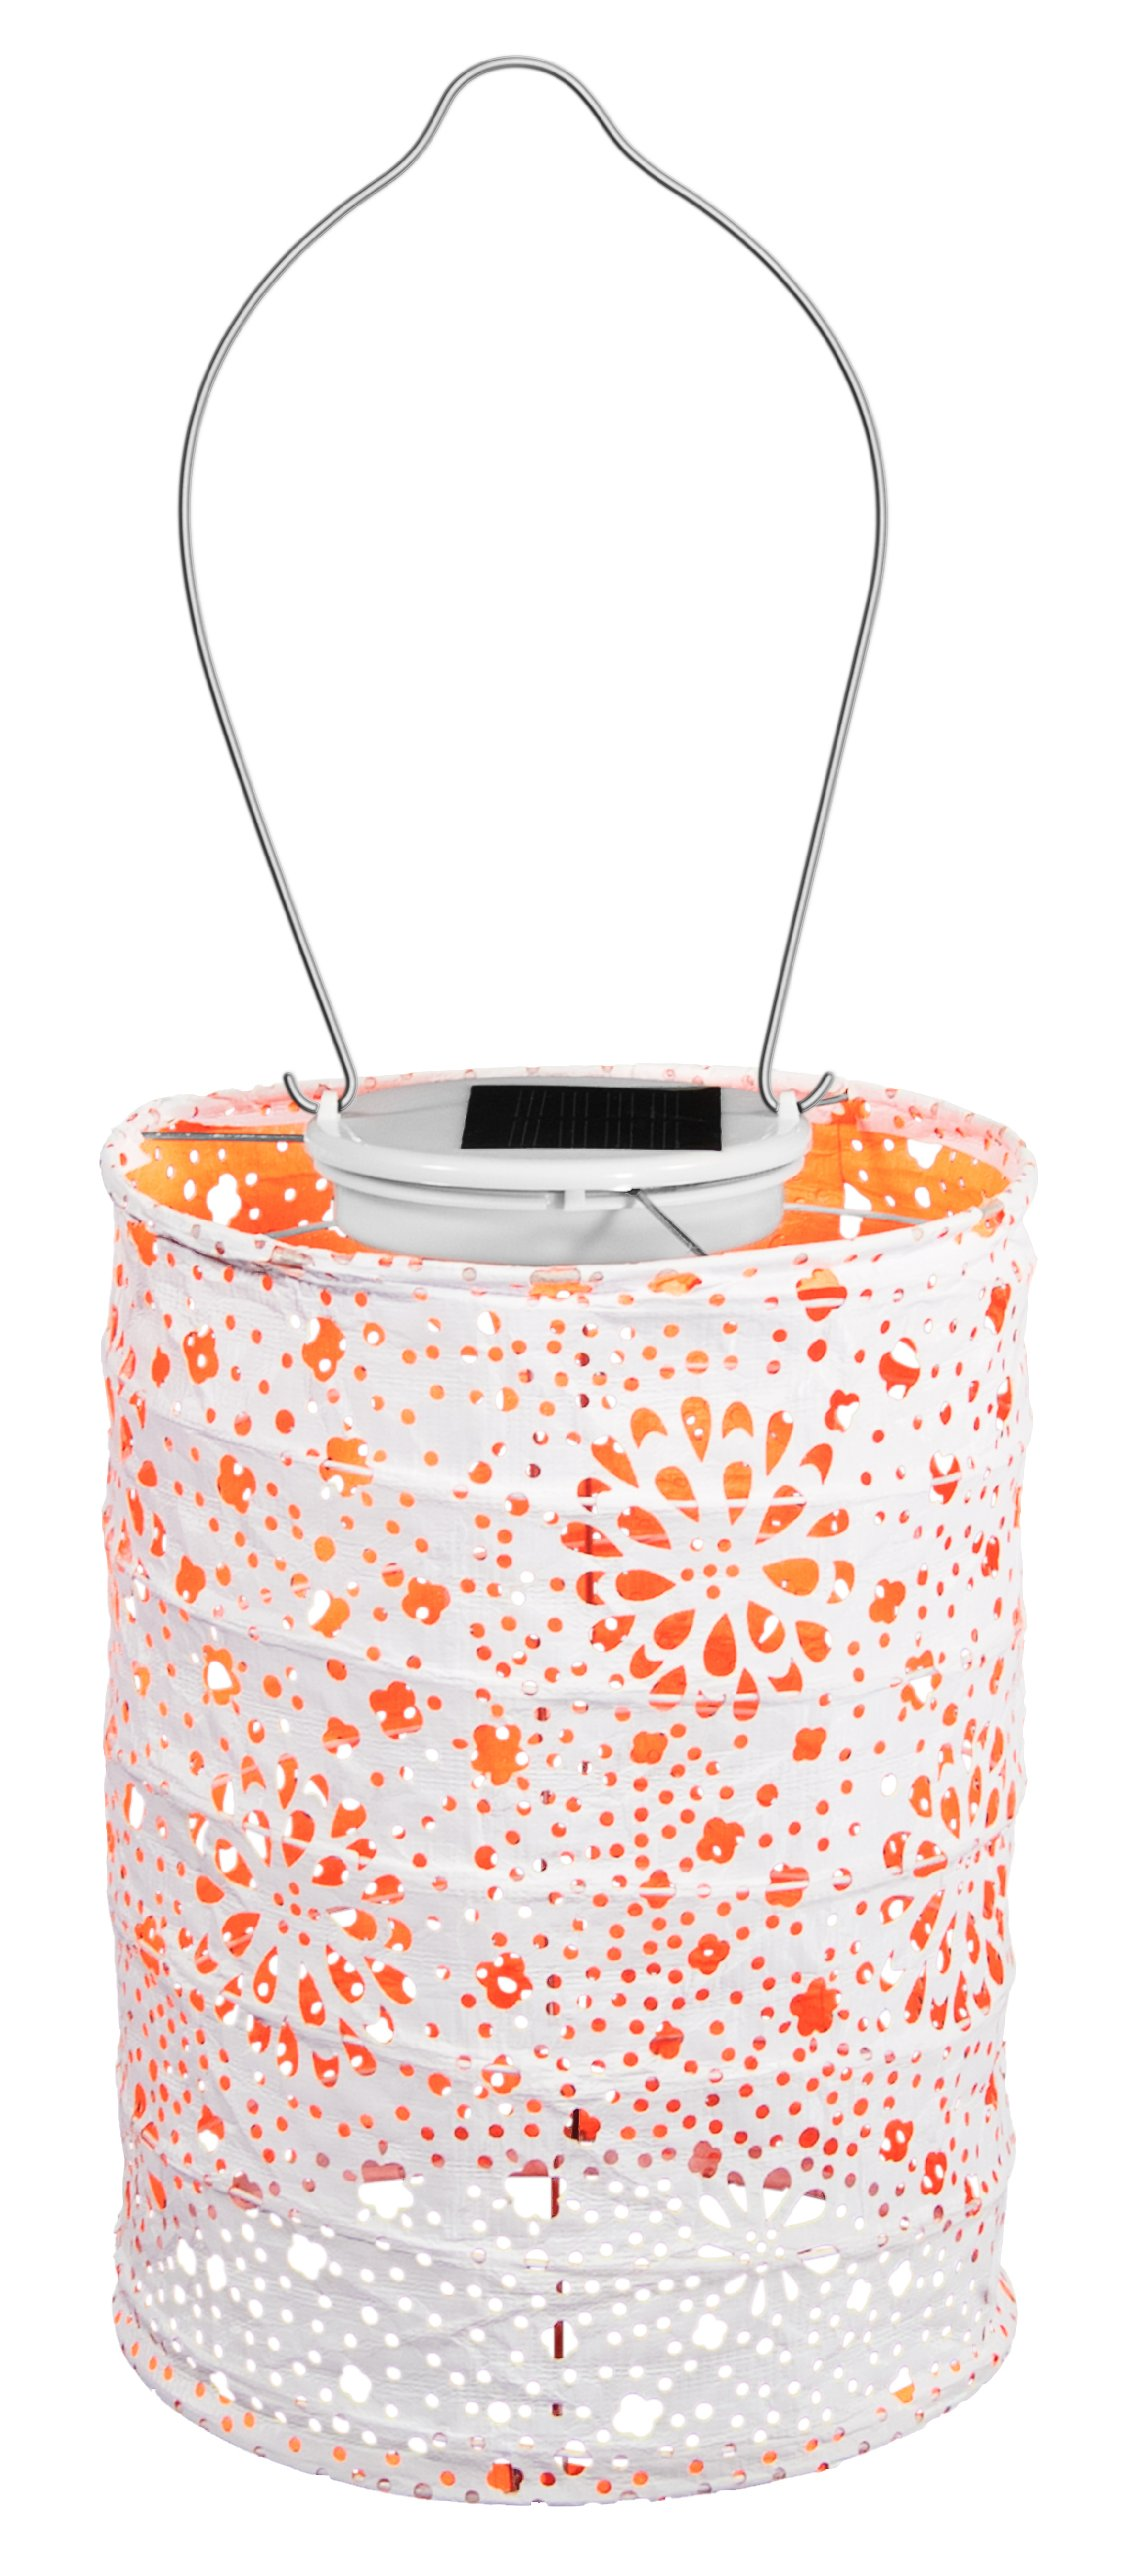 Allsop Home and Garden Soji Stella Neon LED Outdoor Solar Lantern, Handmade with Weather-Resistant UV Rated Tyvek fabric, Stainless Steel Hardware, Auto sensor on/off,  for Patio, Deck, Garden, Color (Neon Orange)